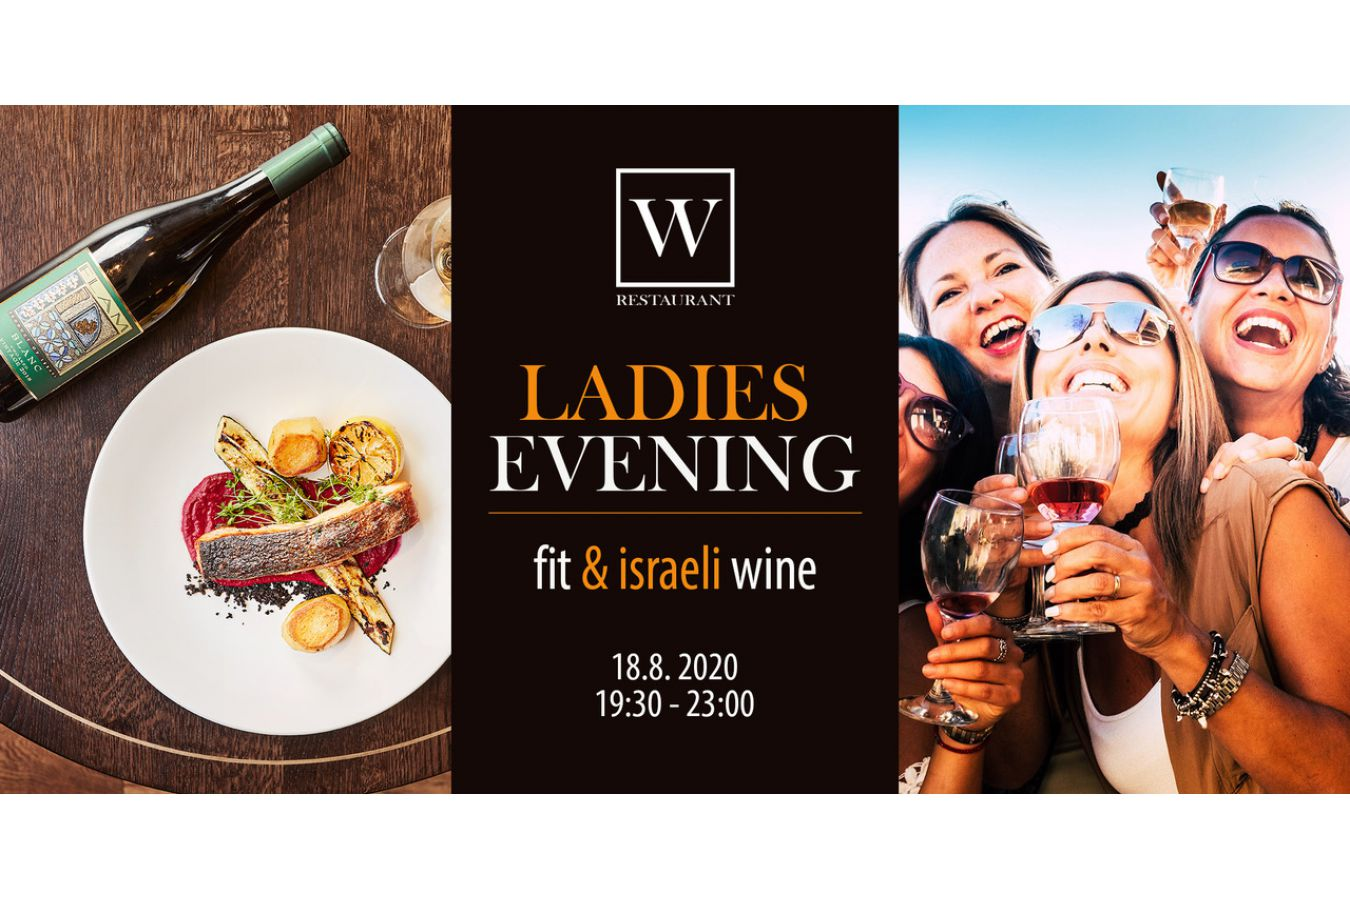 LADIES EVENING - Fit & Israeli Wine